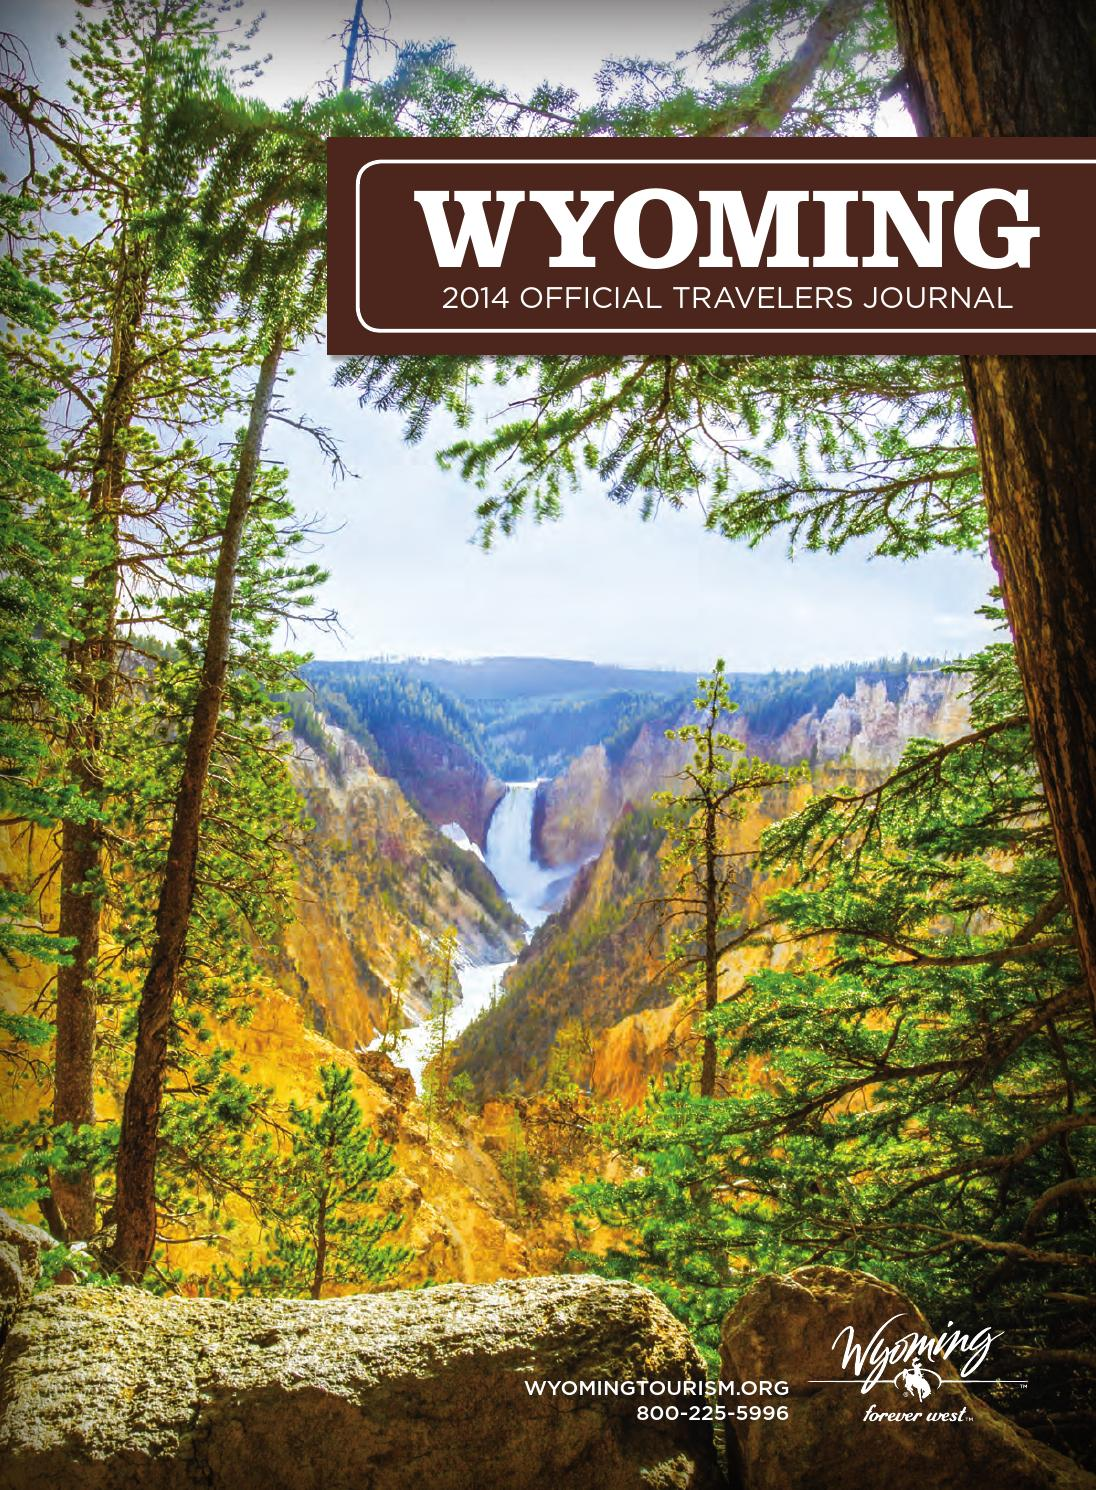 Wyoming - a tourist mecca for travelers 92